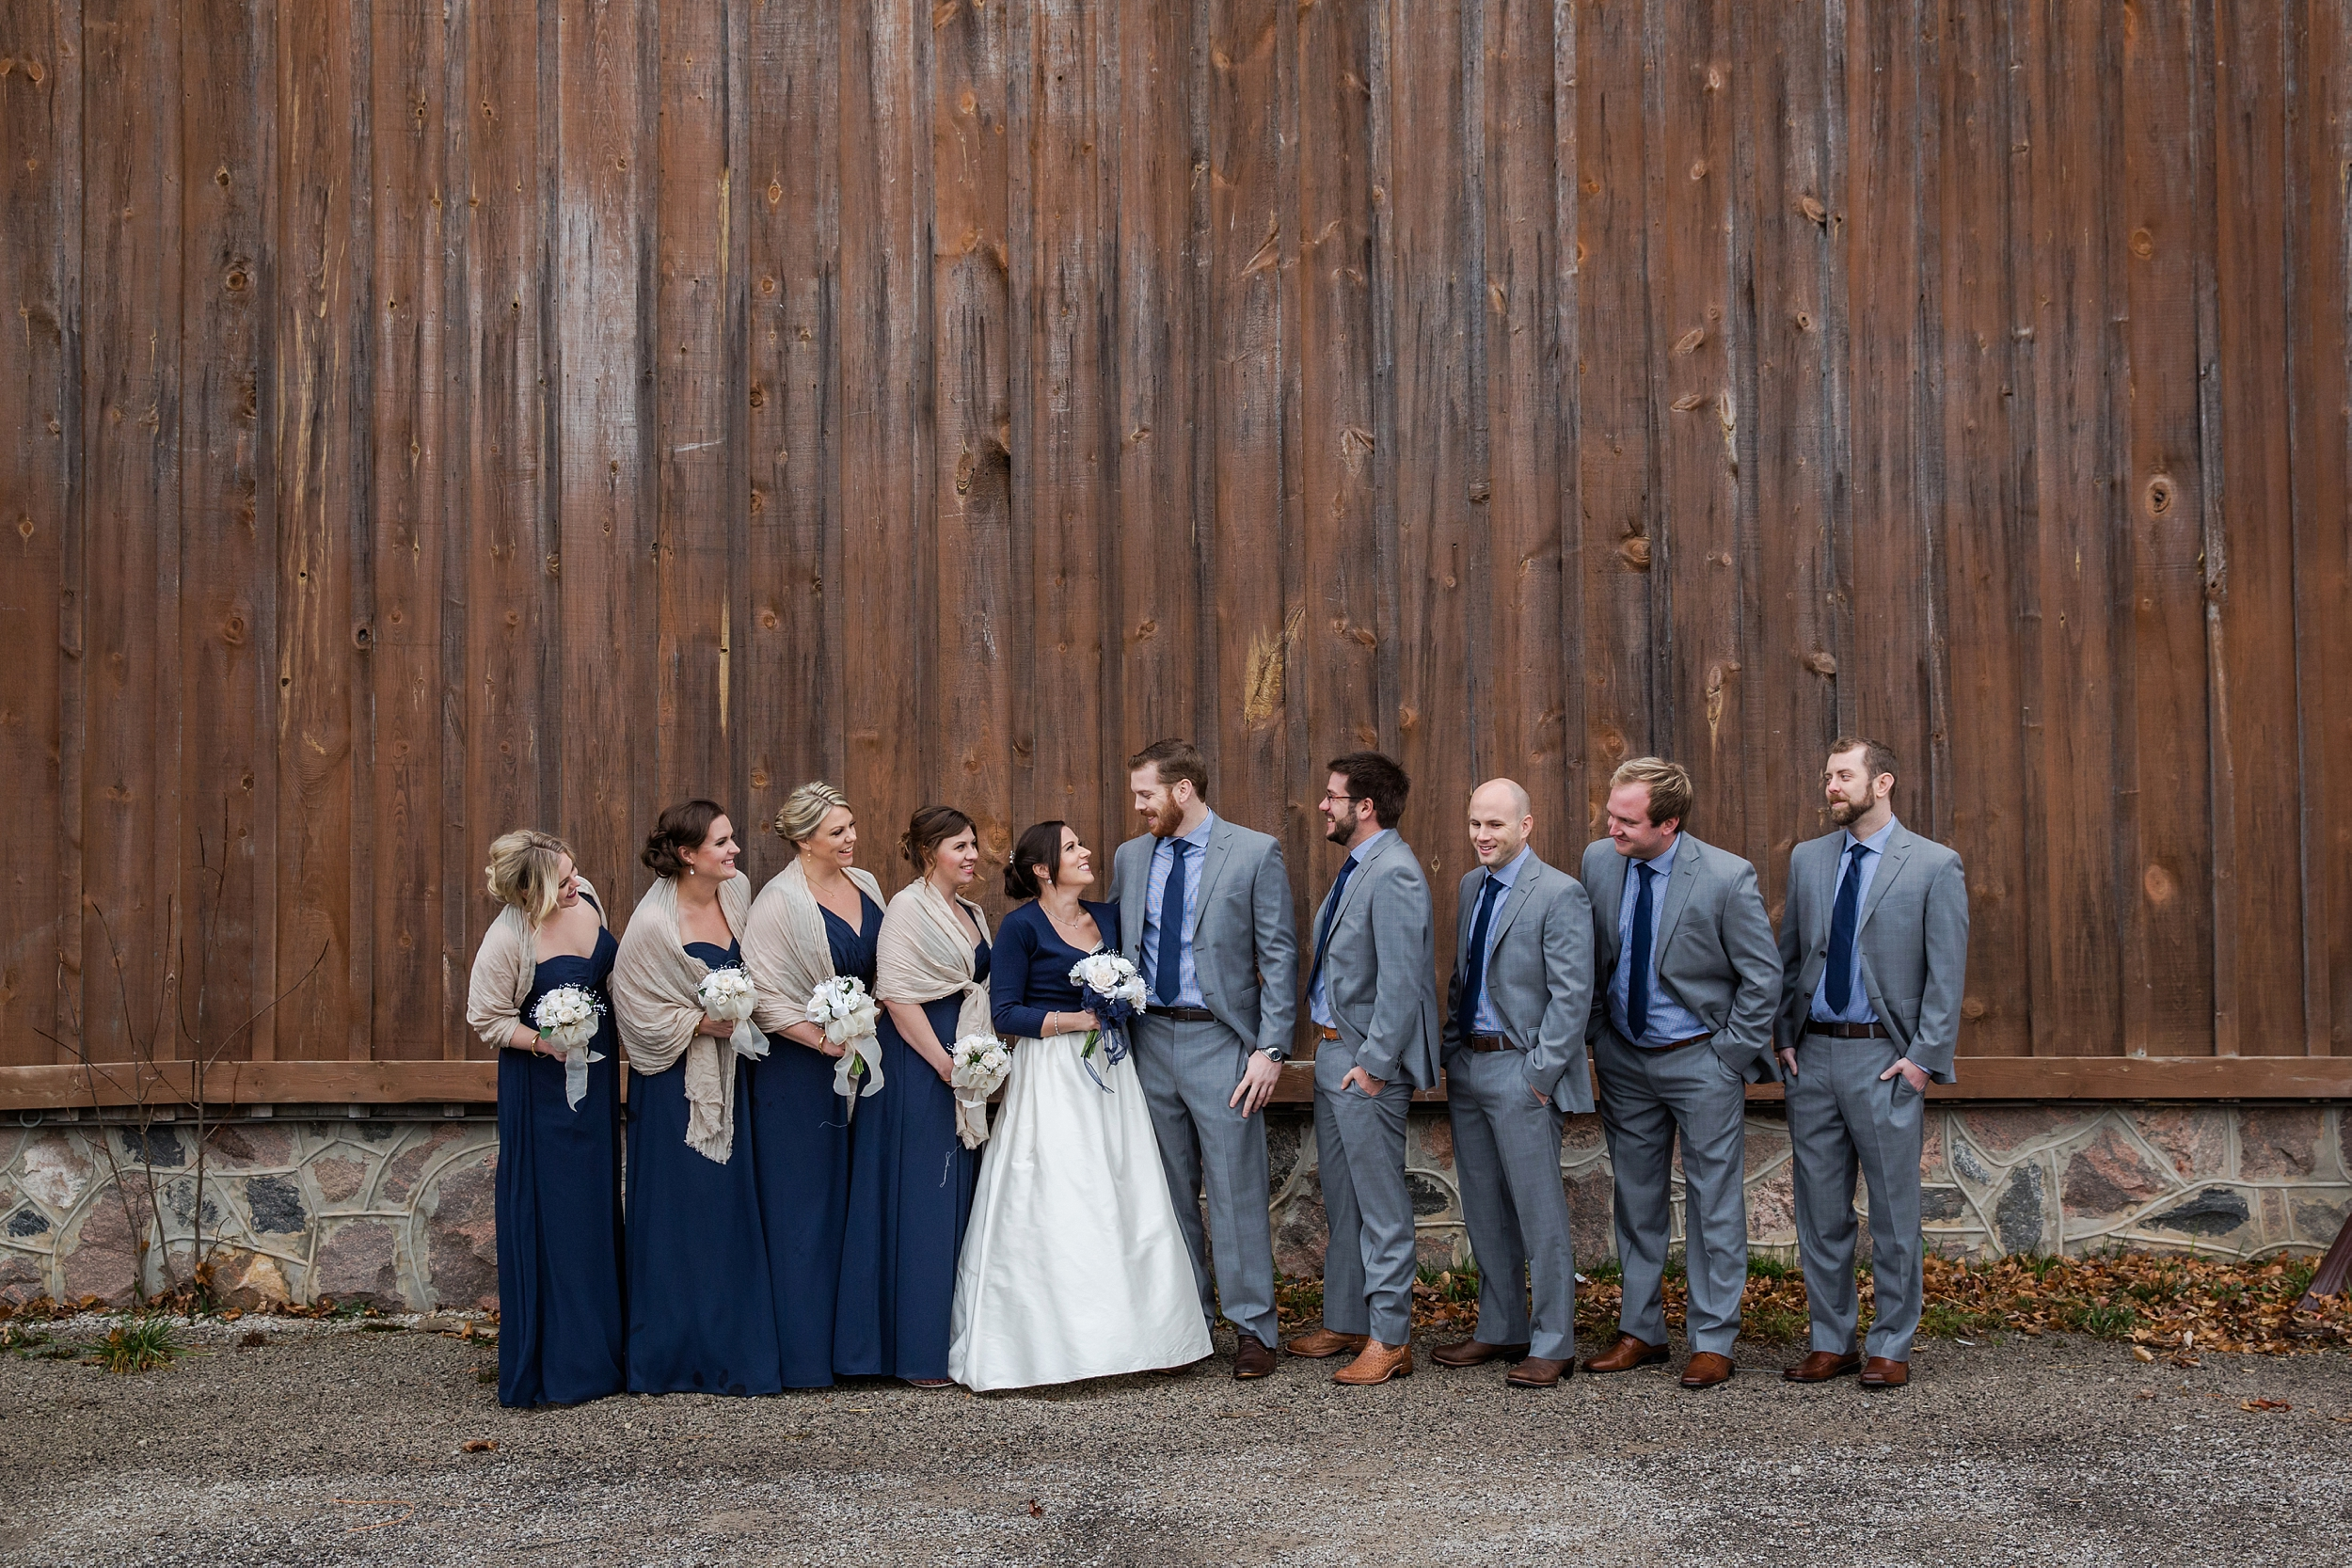 countryheritagebarn-wedding_0040.jpg